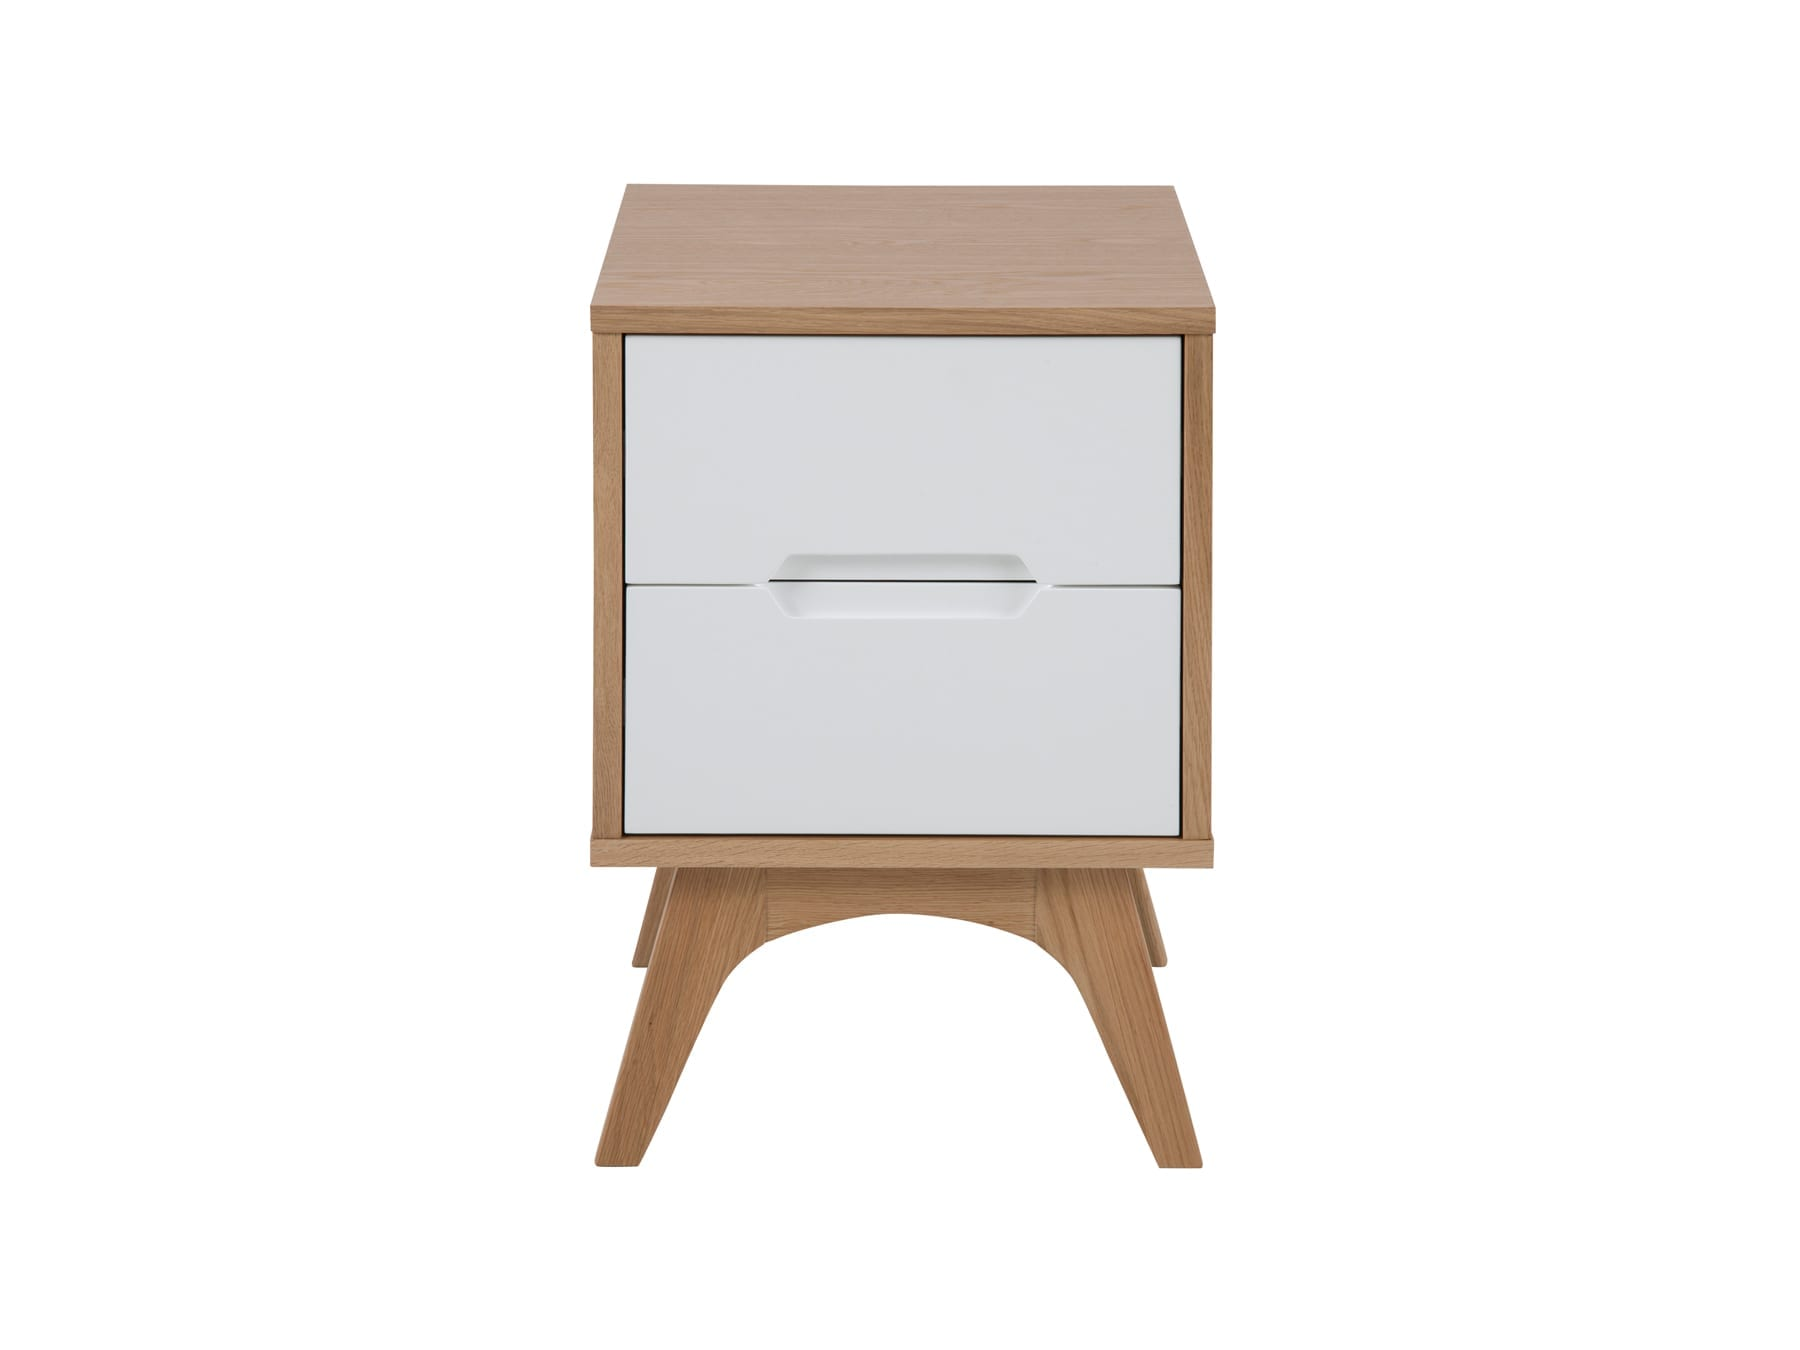 East West Designs Copenhagen Bedside